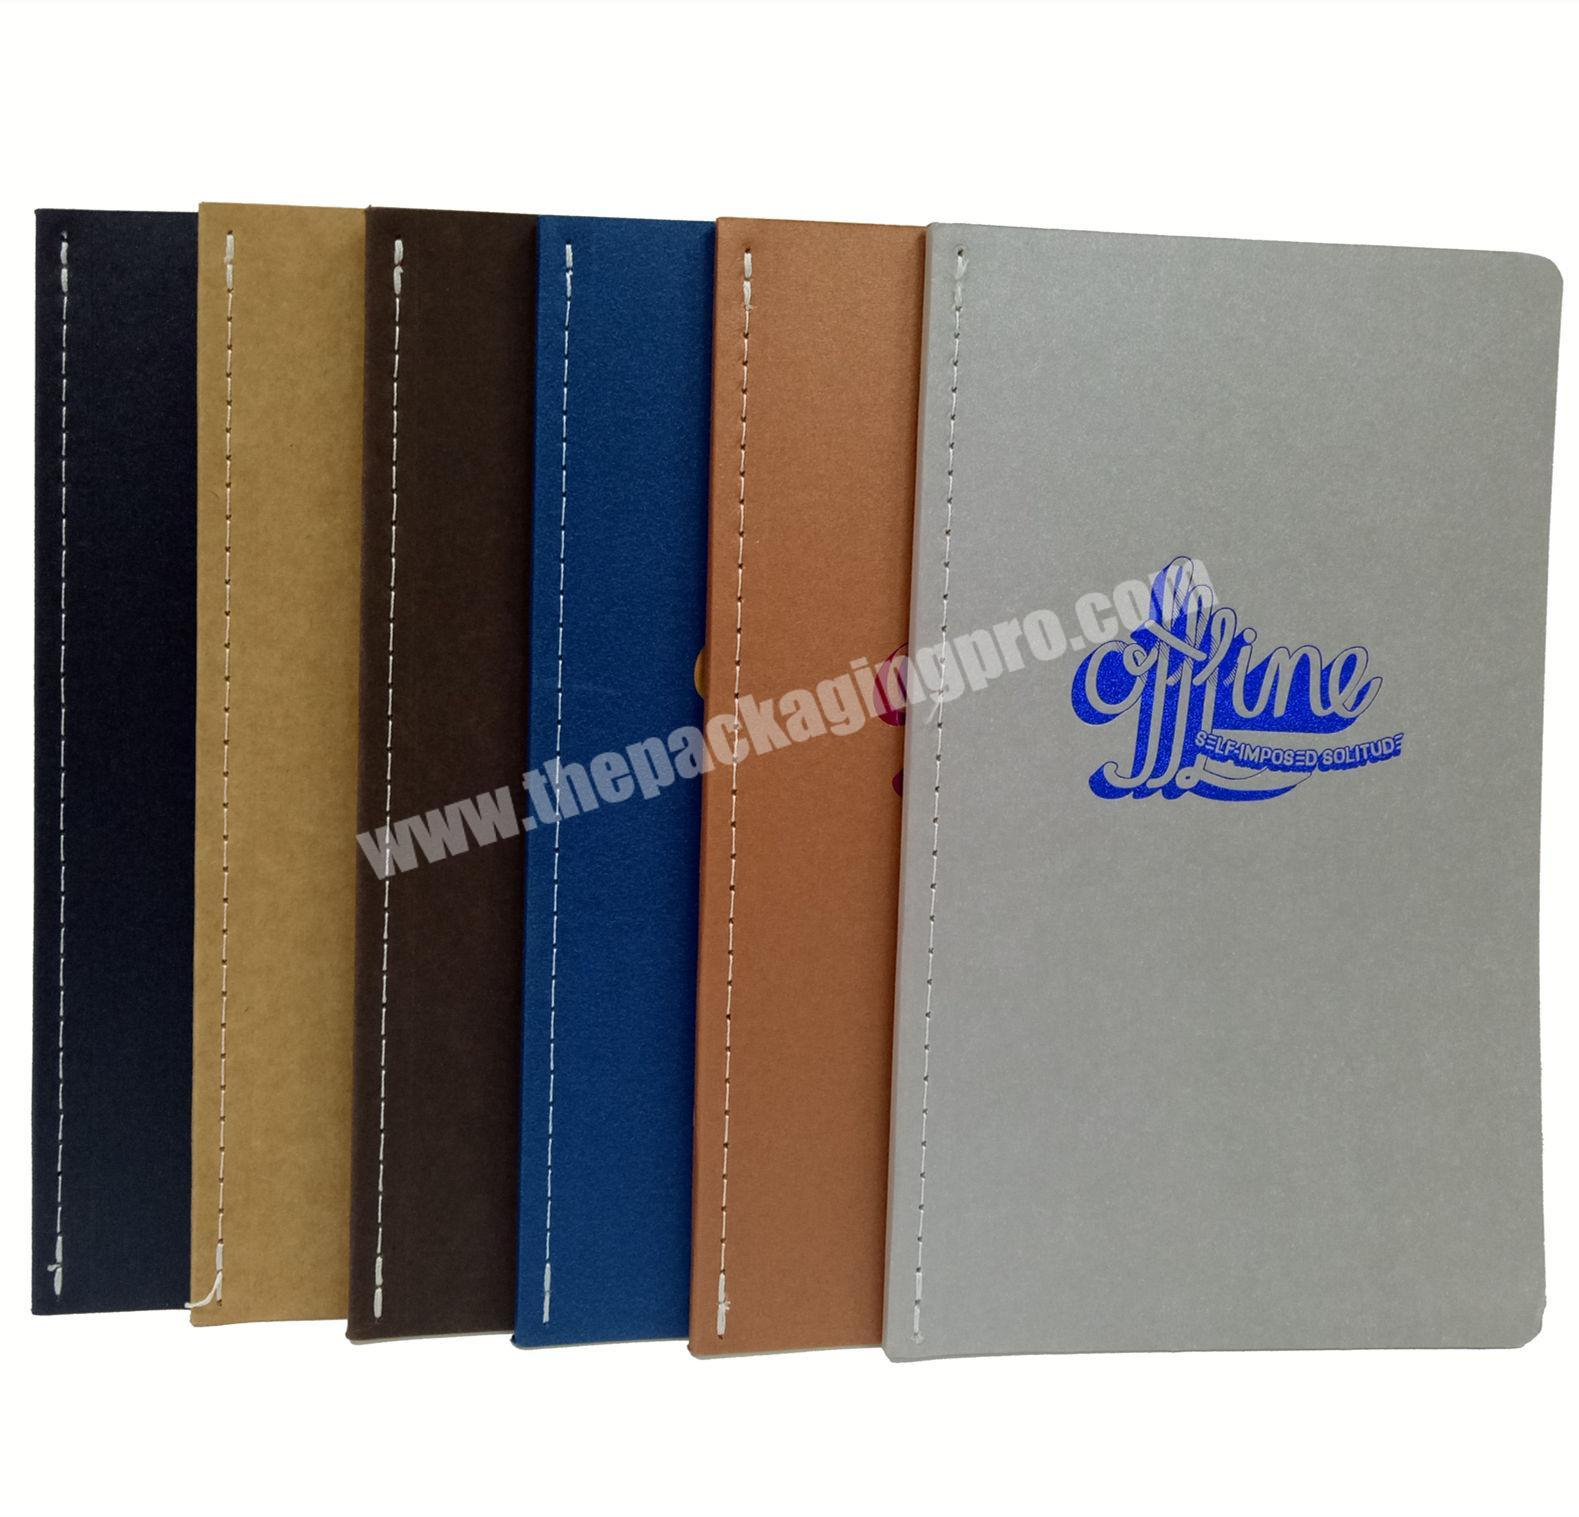 Hot sale to do list planner kraft cover diary paper notebook vintage journal